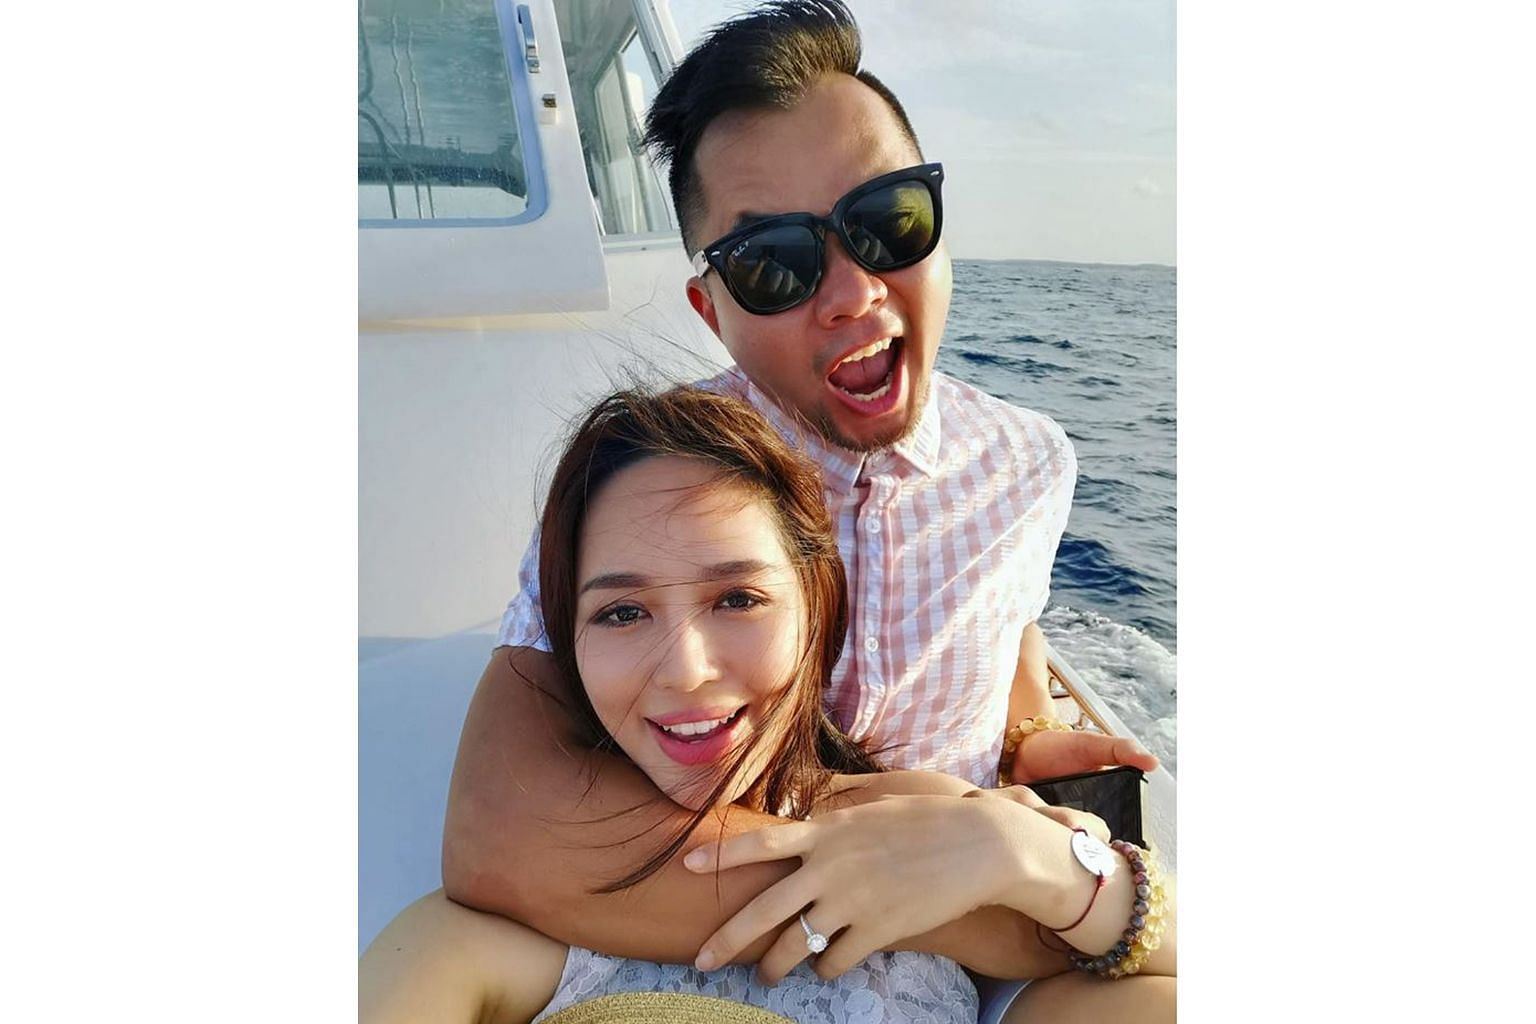 Daniel Ong proposed to his artist girlfriend Fay Tan while on holiday in the Maldives.